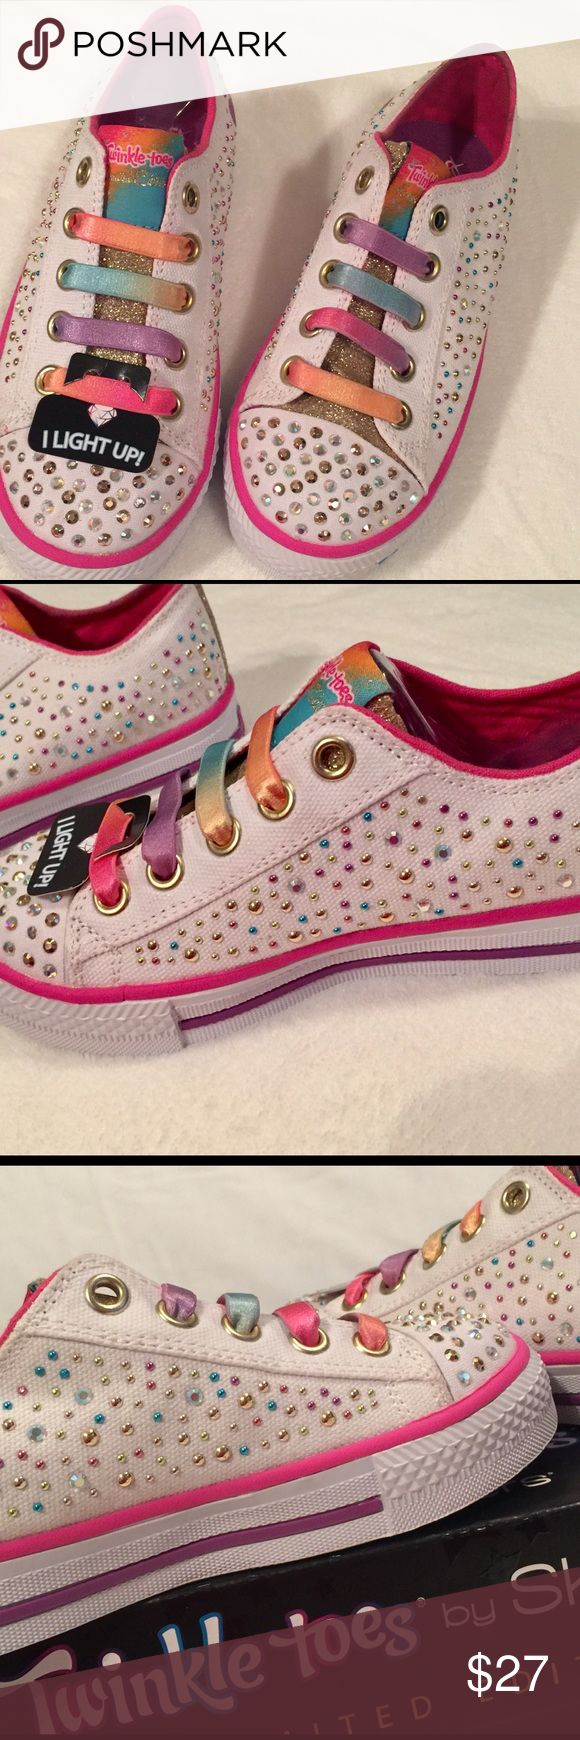 🎉HOST PICK🎉 Skechers Girls Twinkle Toes 👟NIB Brand NIB, So Adorable Girls Skechers 👟! 🌸🌸Limited Edition 🌸 White/Multi 🌸 Toe Portion Lights Up or ✨🌸 Medium Width 🌸 Stretch No-Tie Multicolored Laces 🌸 Each pair comes w/2 Sheets of Skechers Body Tattoos 🌸 Will Pair w/ALL Spring & Summer Outfits!🌸 ADORABLE 🌸 Skechers Shoes Sneakers